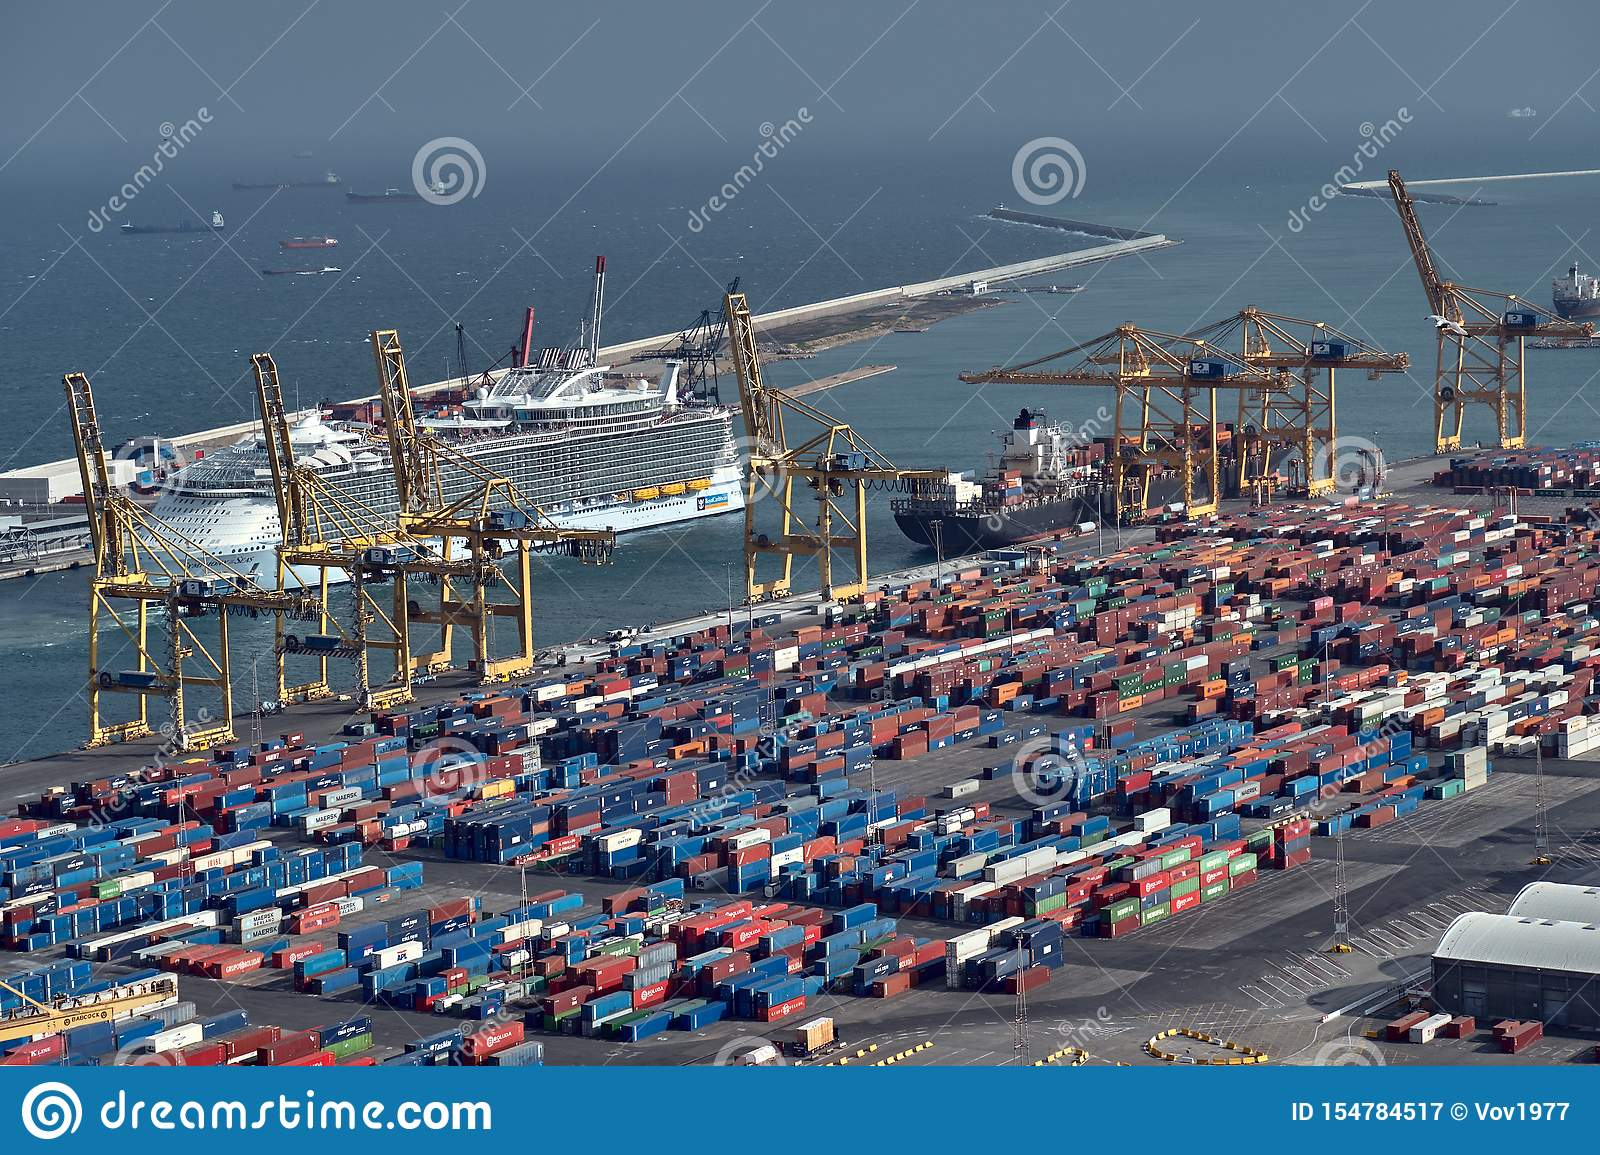 Barcelona, Spain - May, 27 2018: Blue and red metal cargo containers being loaded on cargo ship by huge port crane at the Sea Port